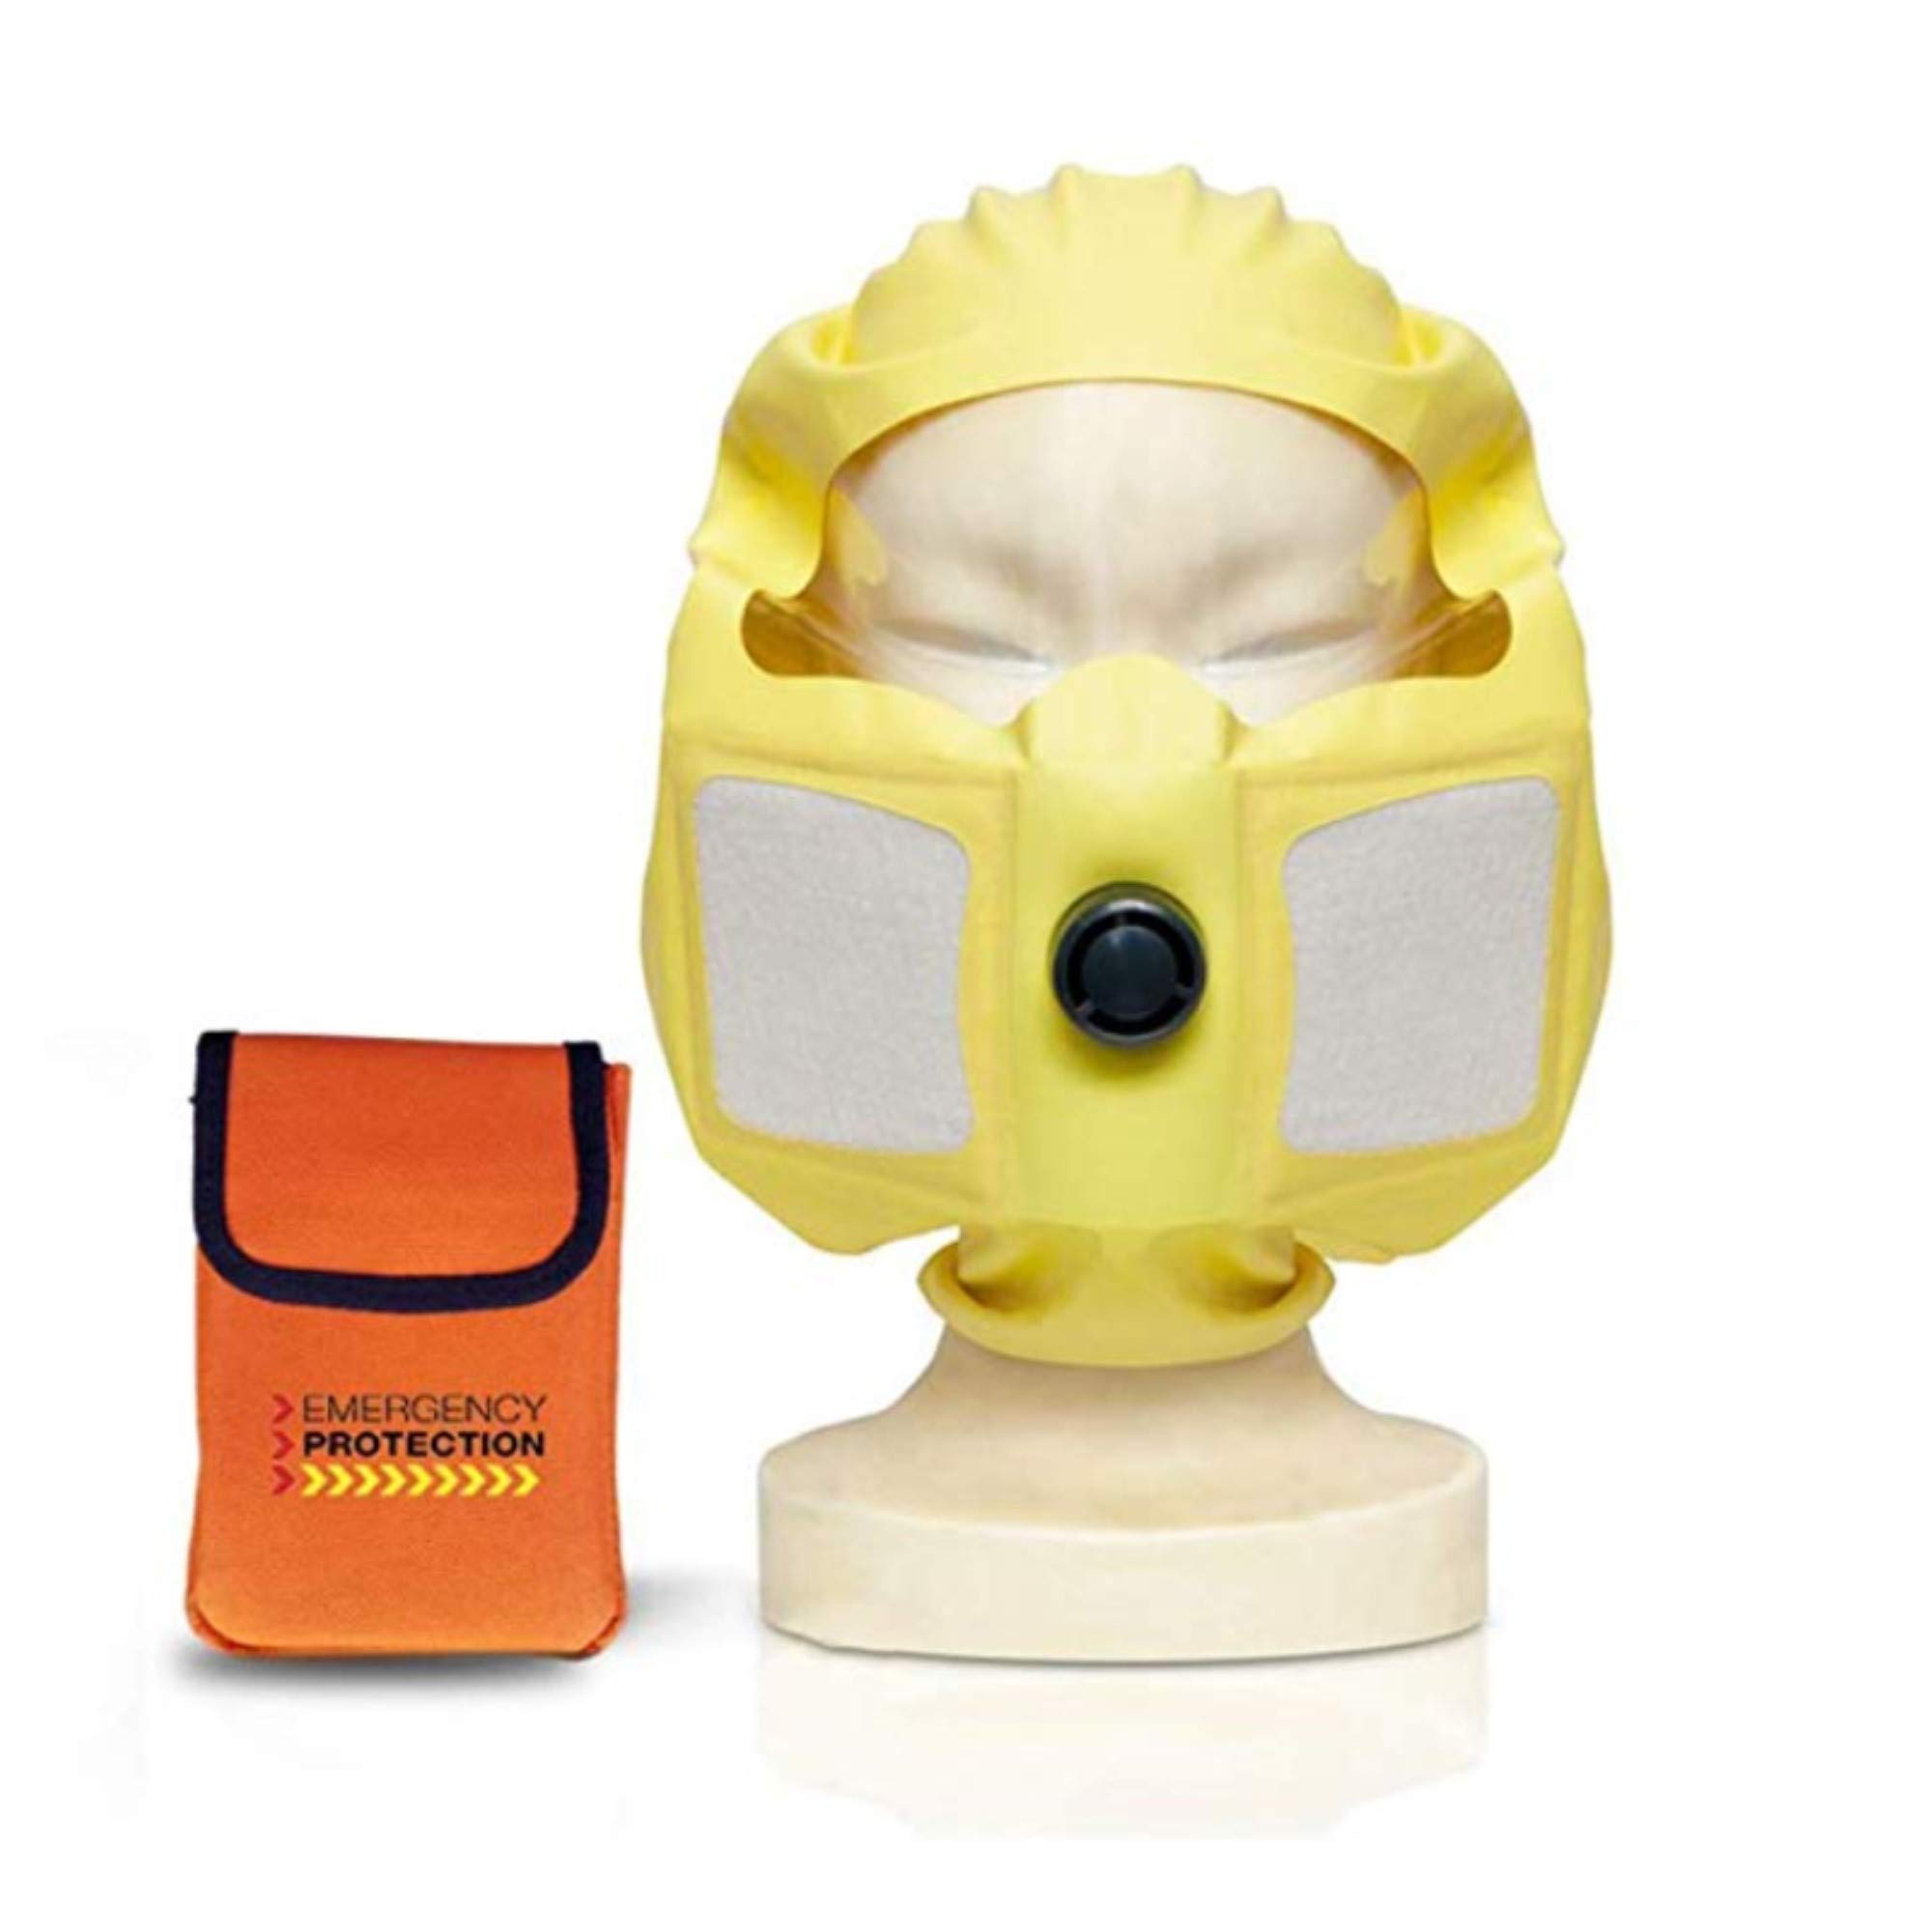 Duram 4NE1 Escape Mask Full Face Respirator Mask Gas Mask Emergency Mask Personal Protection Against Fire Gas Smoke by DURAM MASK (Image #1)